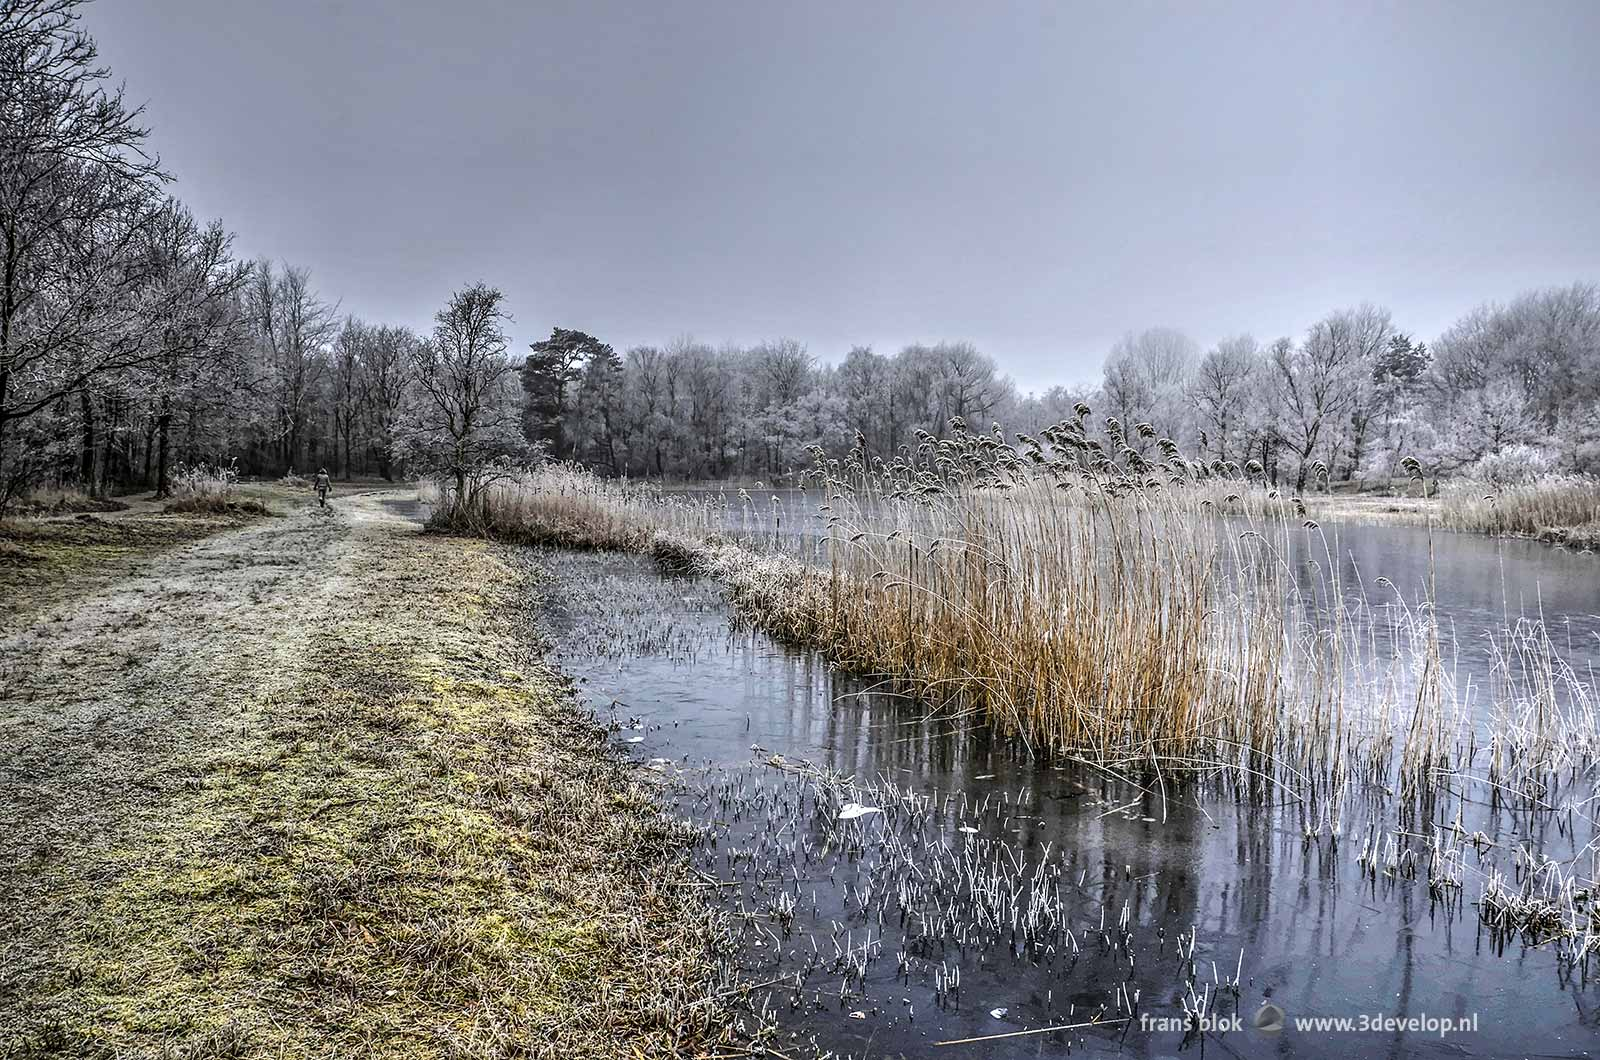 Wintry photo of frozen lake Tenella near Oostvoorne, with frost on reeds, trees and bushes and a lonesome hiker